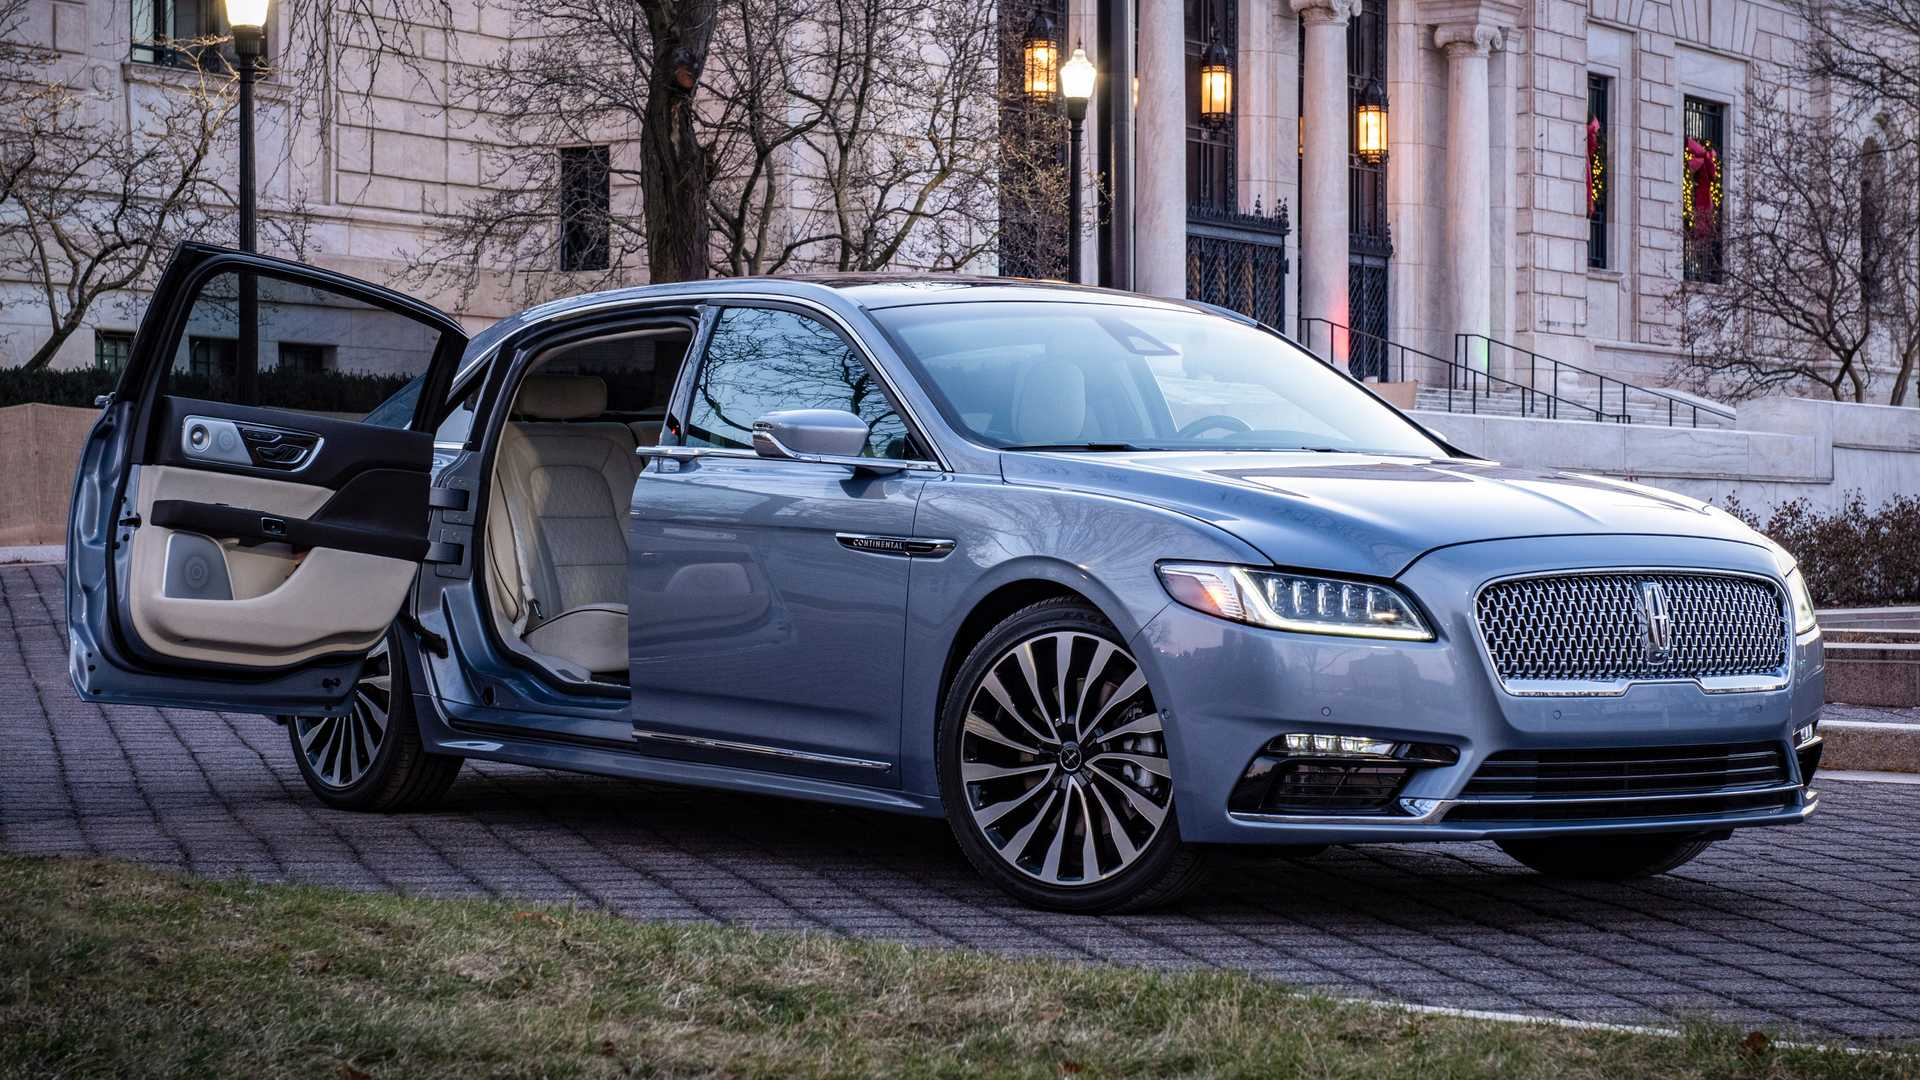 Lincoln Sedans Will Not Return In The Foreseeable Future